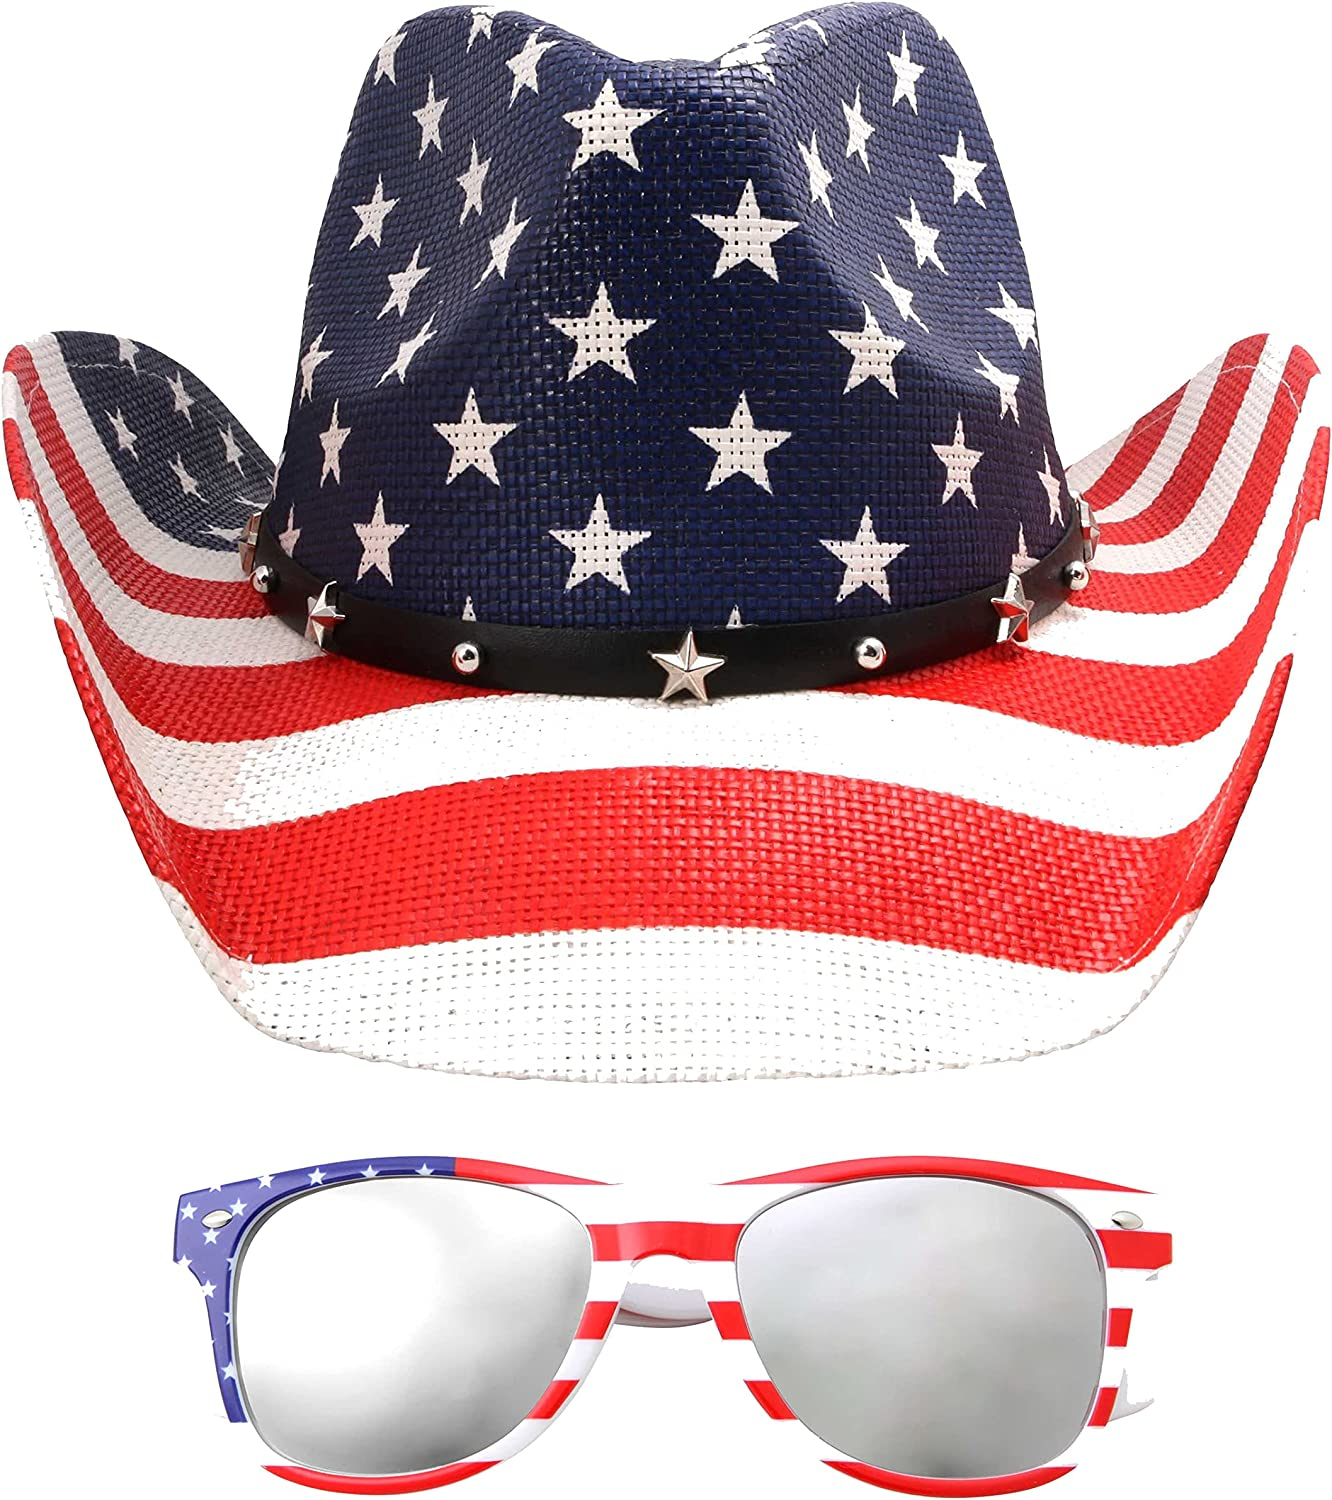 grinderPUNCH Classic USA American Flag Hat Oakland Manufacturer regenerated product Mall Cowboy